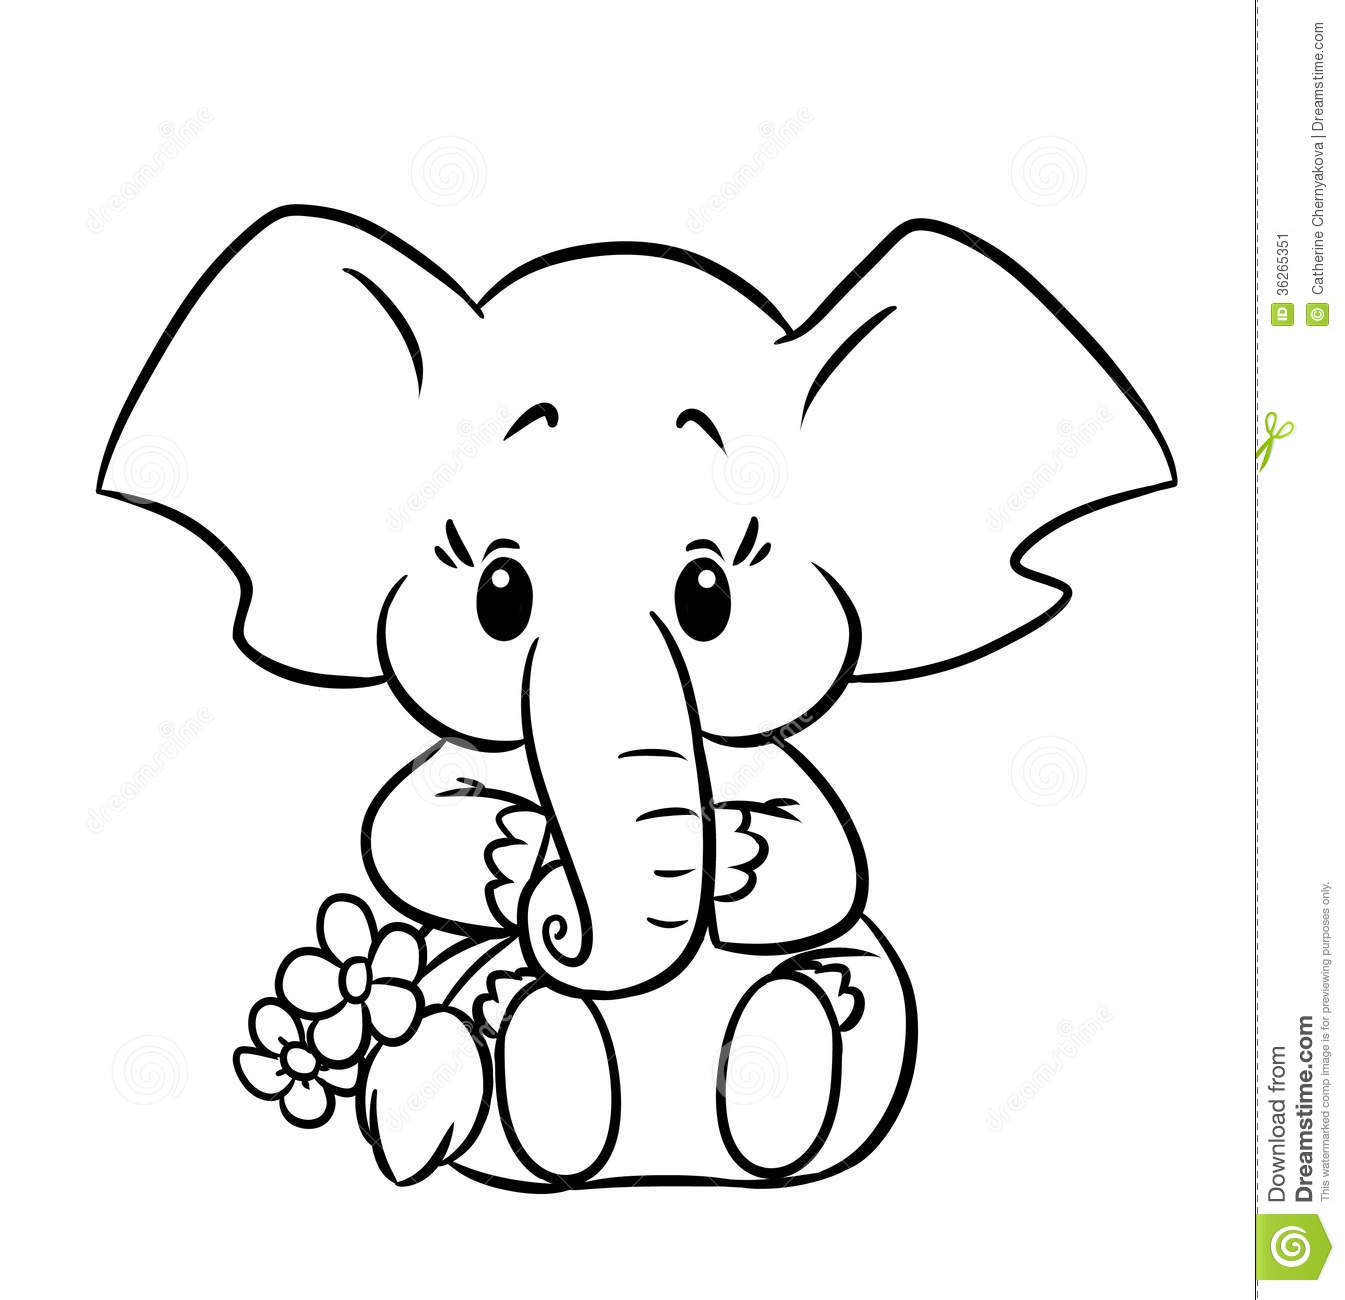 Elephant coloring #8, Download drawings